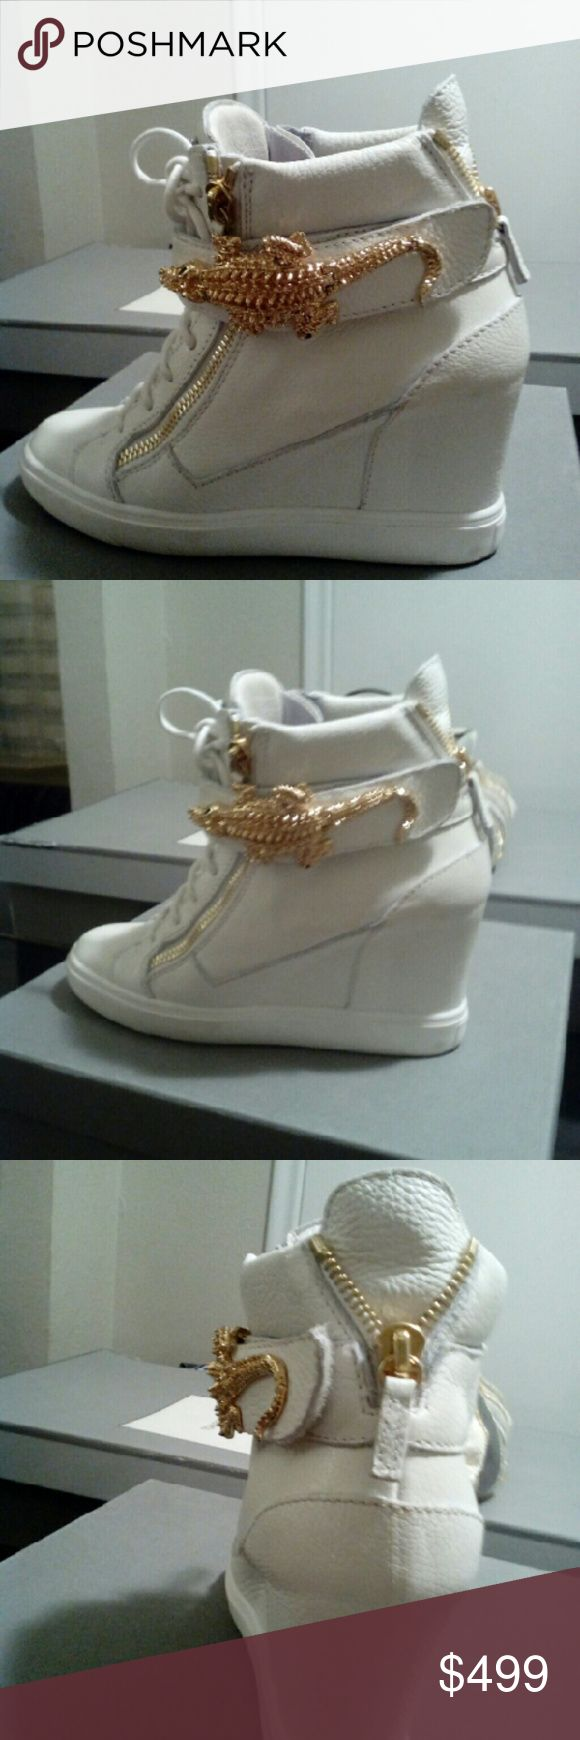 Guiseppi zanotti sneakers. New with box. White sneakers with gold alligator. New year sale! Sale! guiseppi zanotti Shoes Athletic Shoes